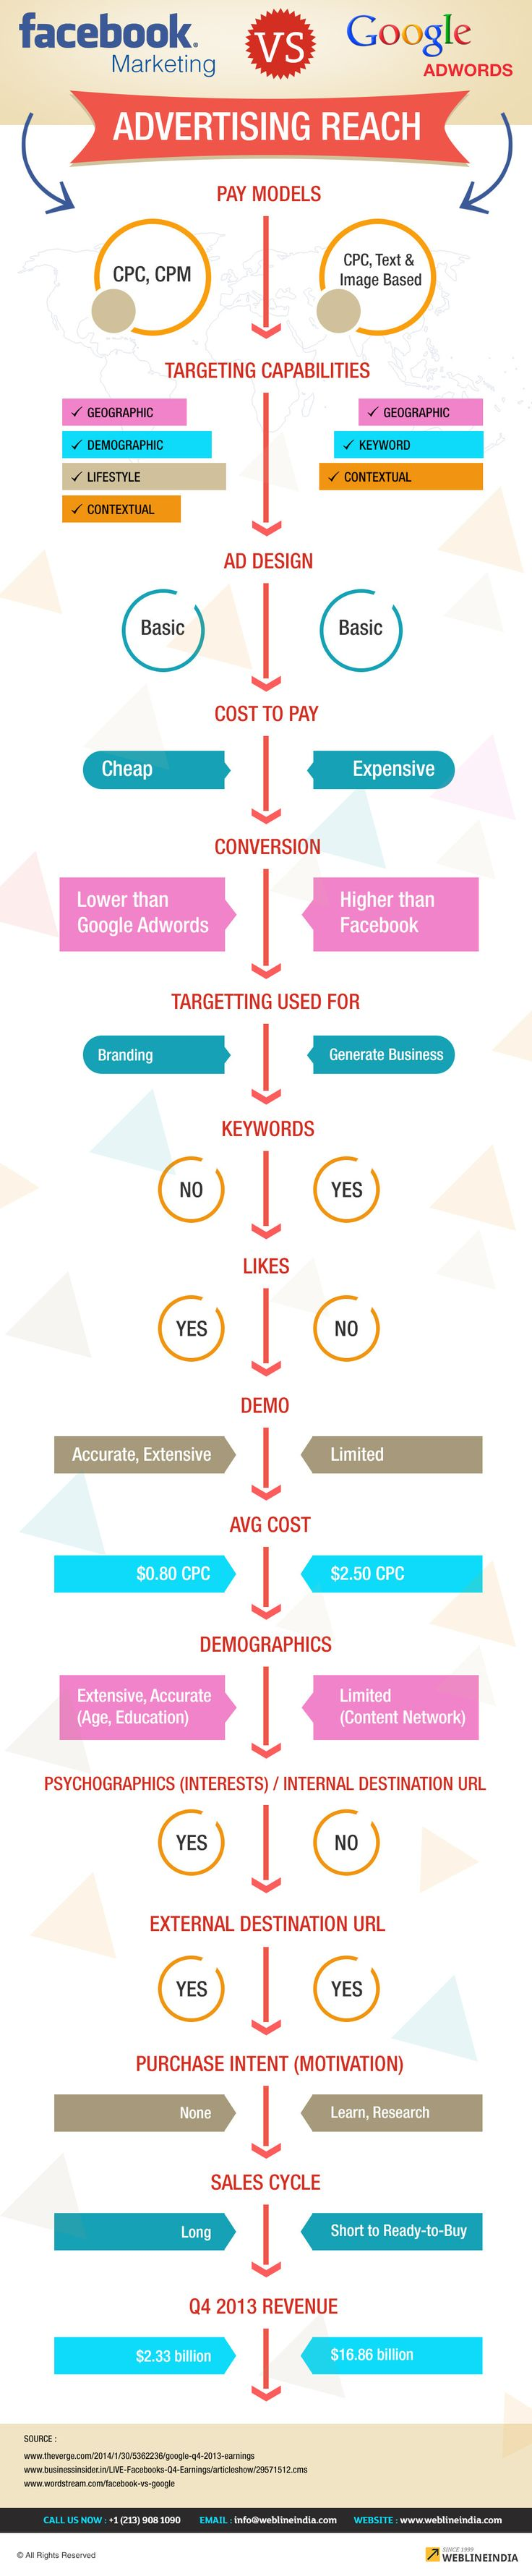 Facebook Marketing VS Google Adwords - Advertising Reach #infographic